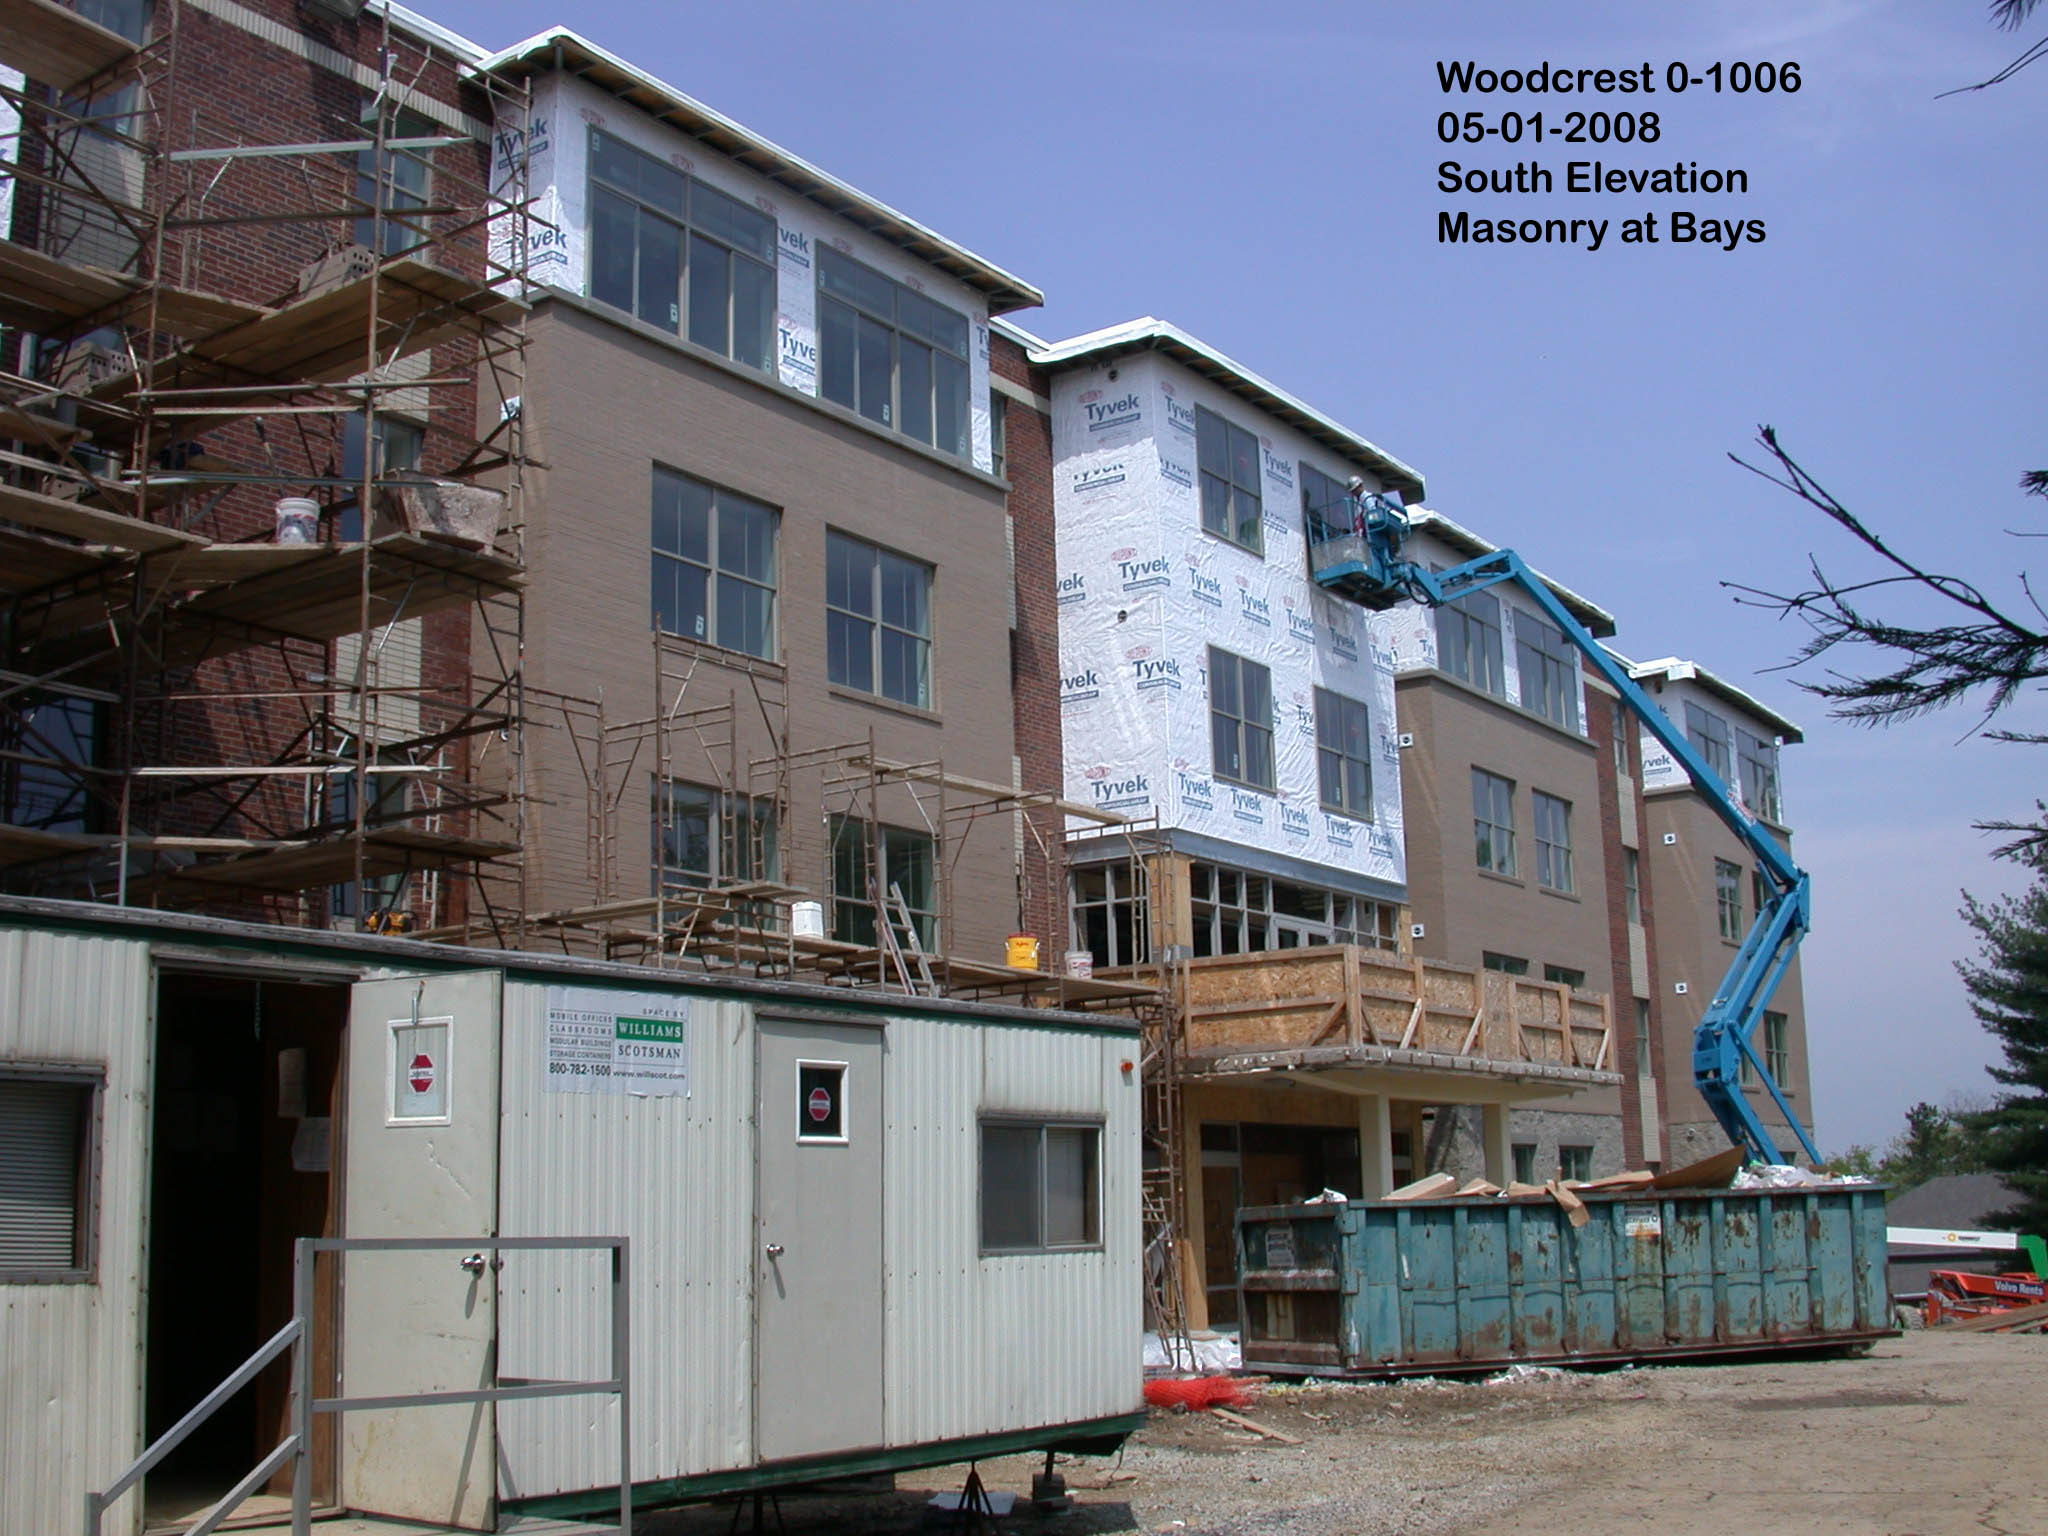 Woodcrest Retirement Residence Sota Construction Services